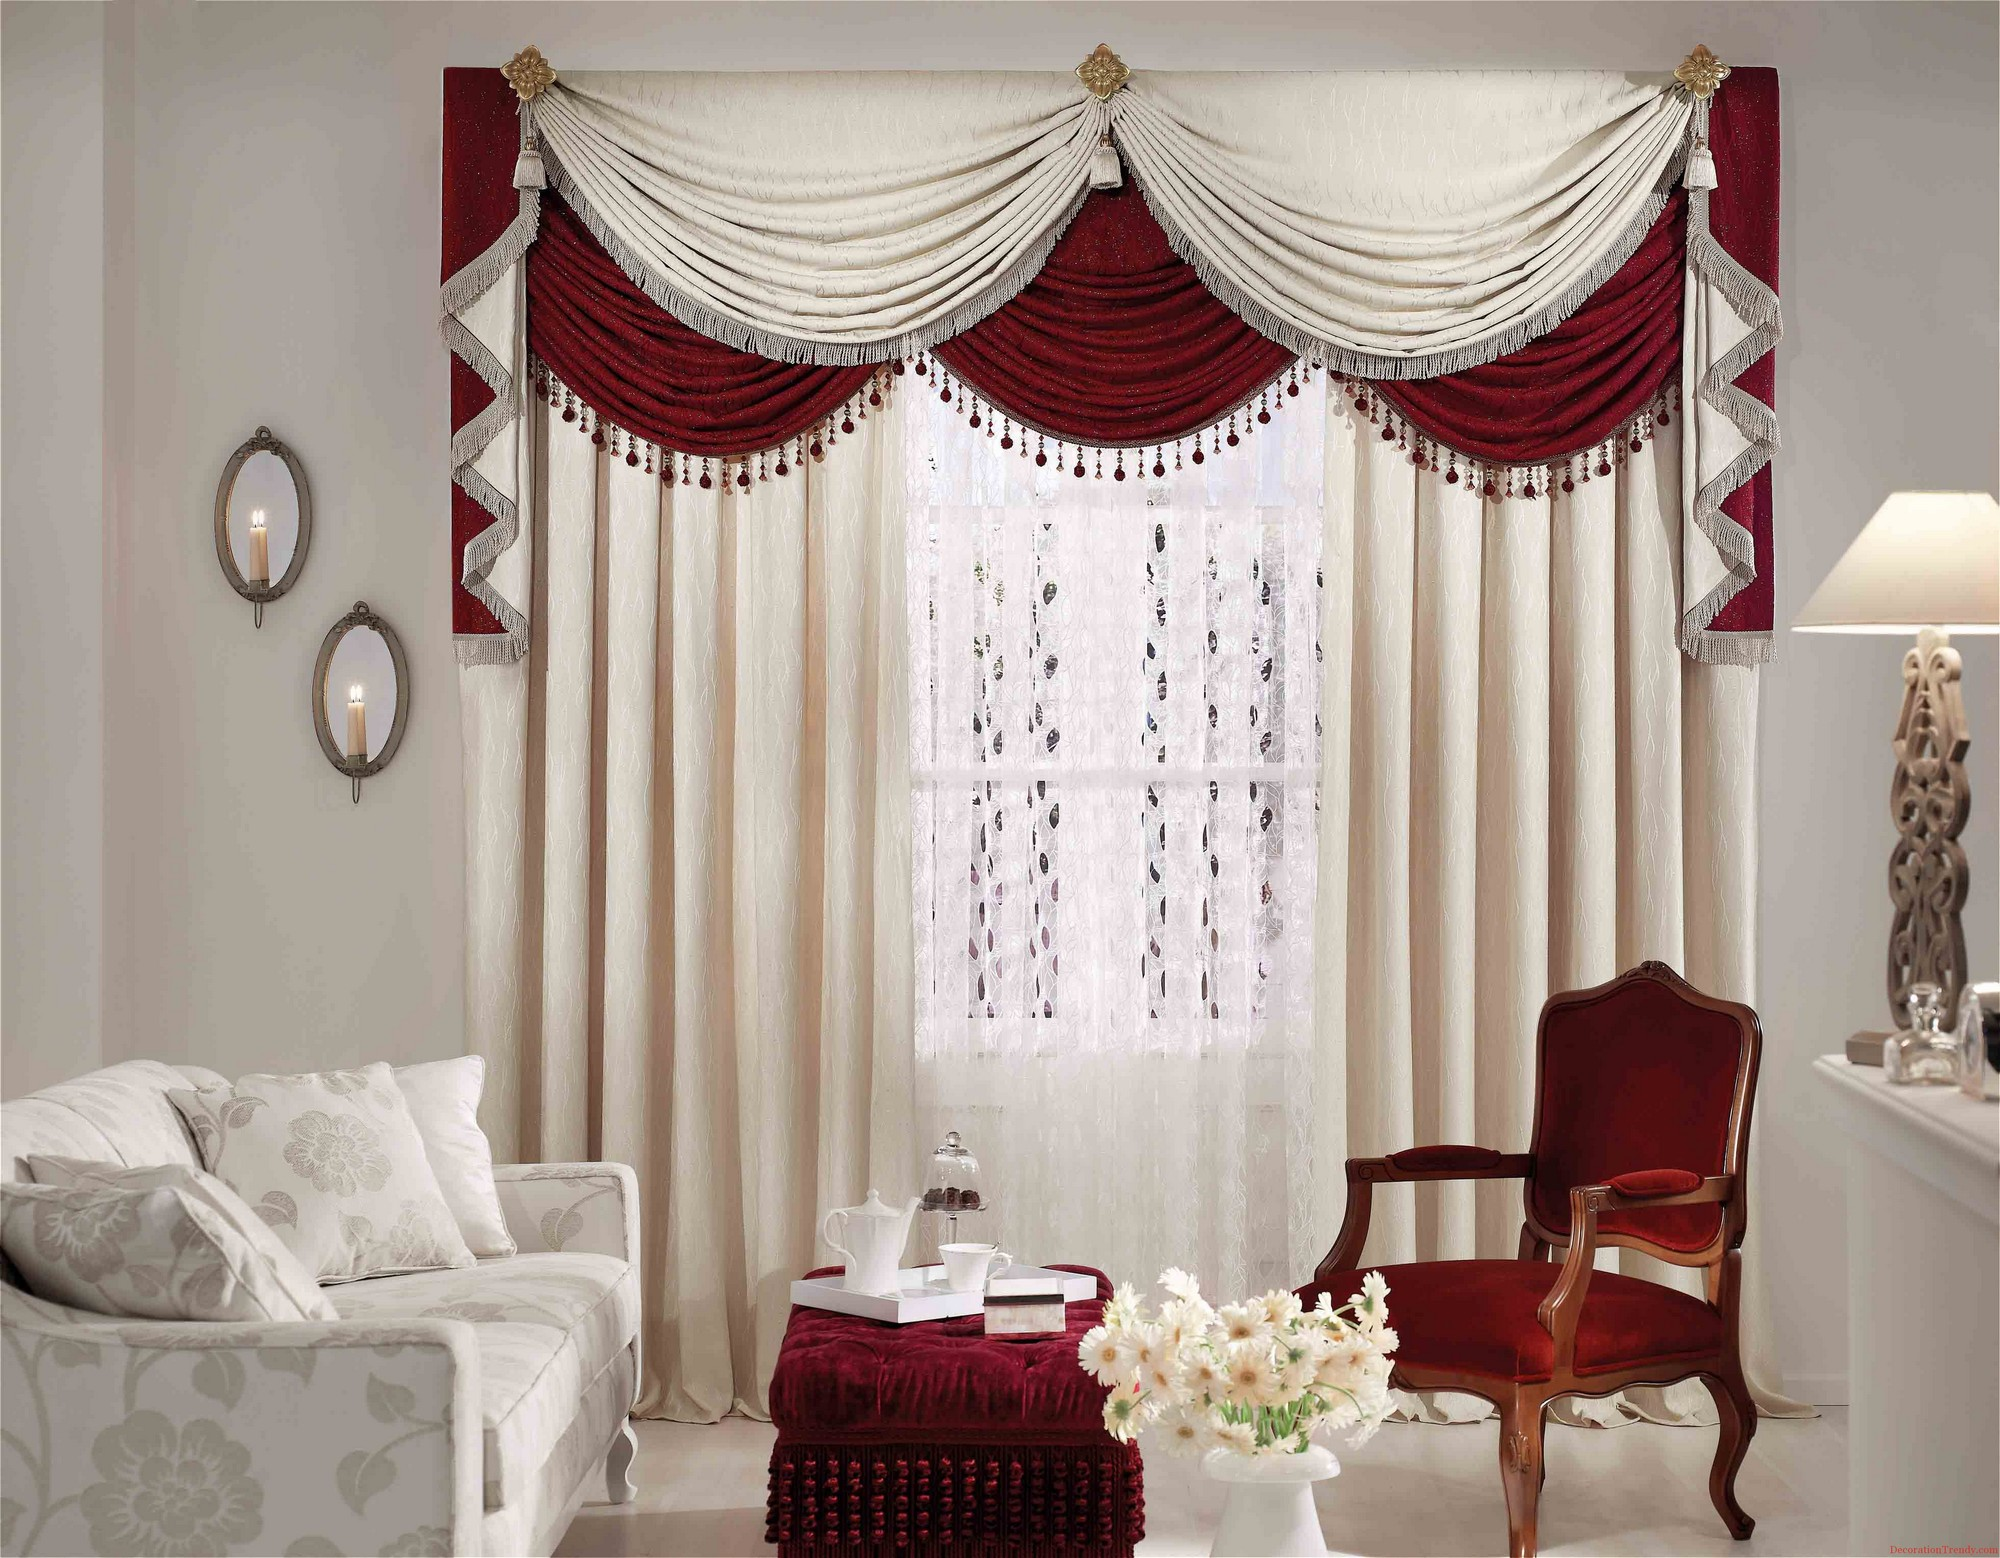 Living room curtains 2016 - Gorgeous Living Room Curtains Facing White Flowery Sofa And Red Chair Beside Tufted Ottoman